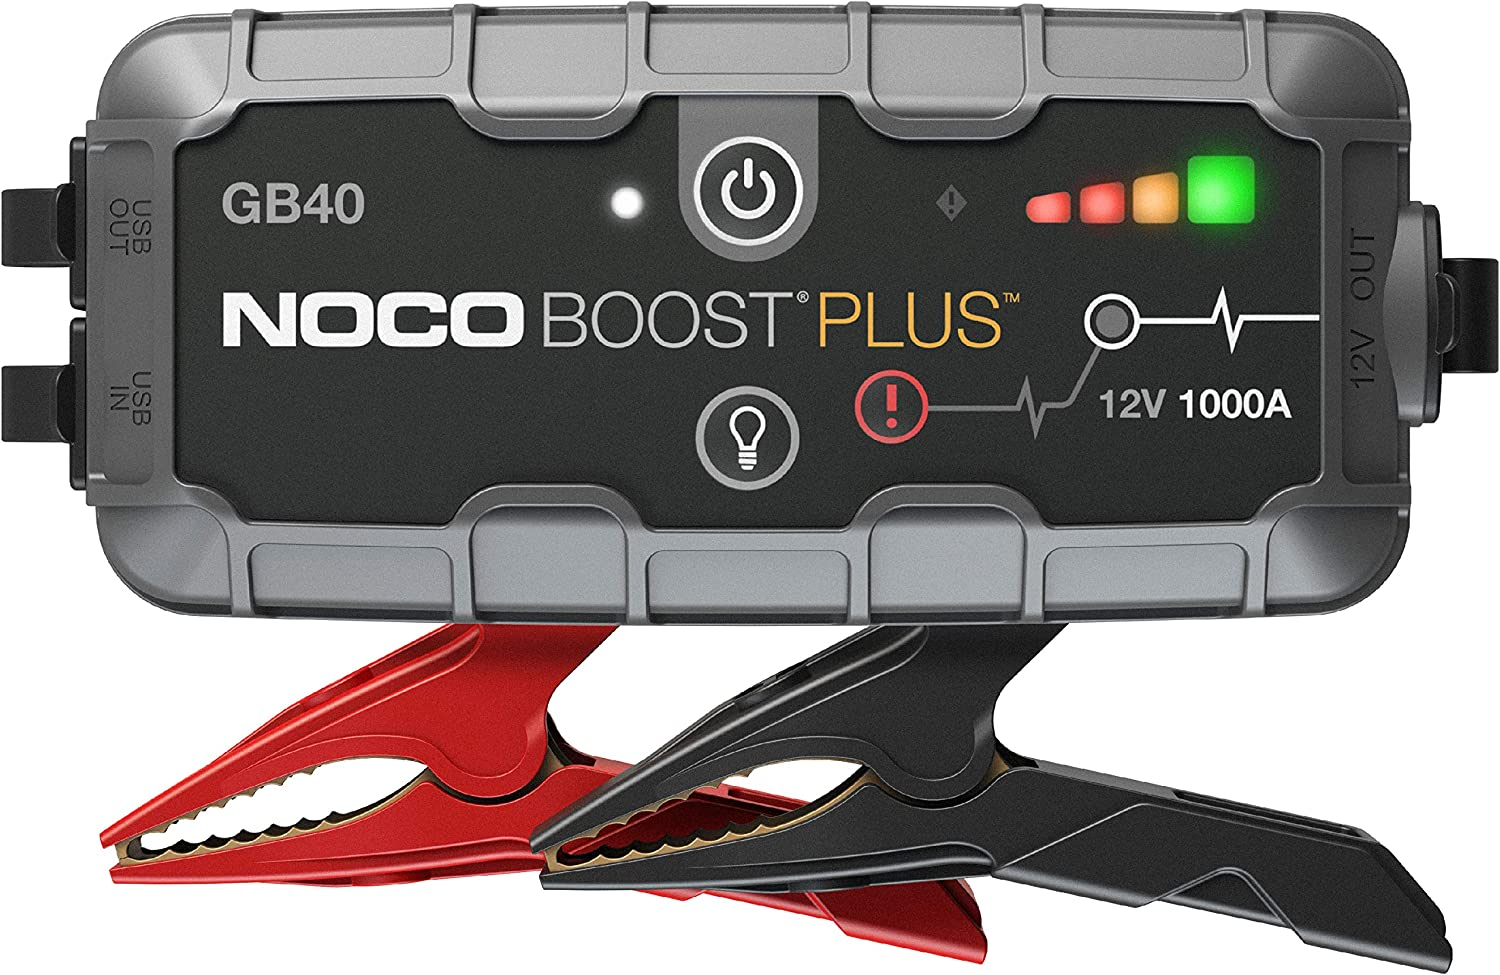 NOCO Boost Plus GB40 1000 Amp 12-Volt UltraSafe Portable Lithium Car Battery Booster Jump Starter Power Pack For Up To 6-Liter Petrol And 3-Liter Diesel Engines